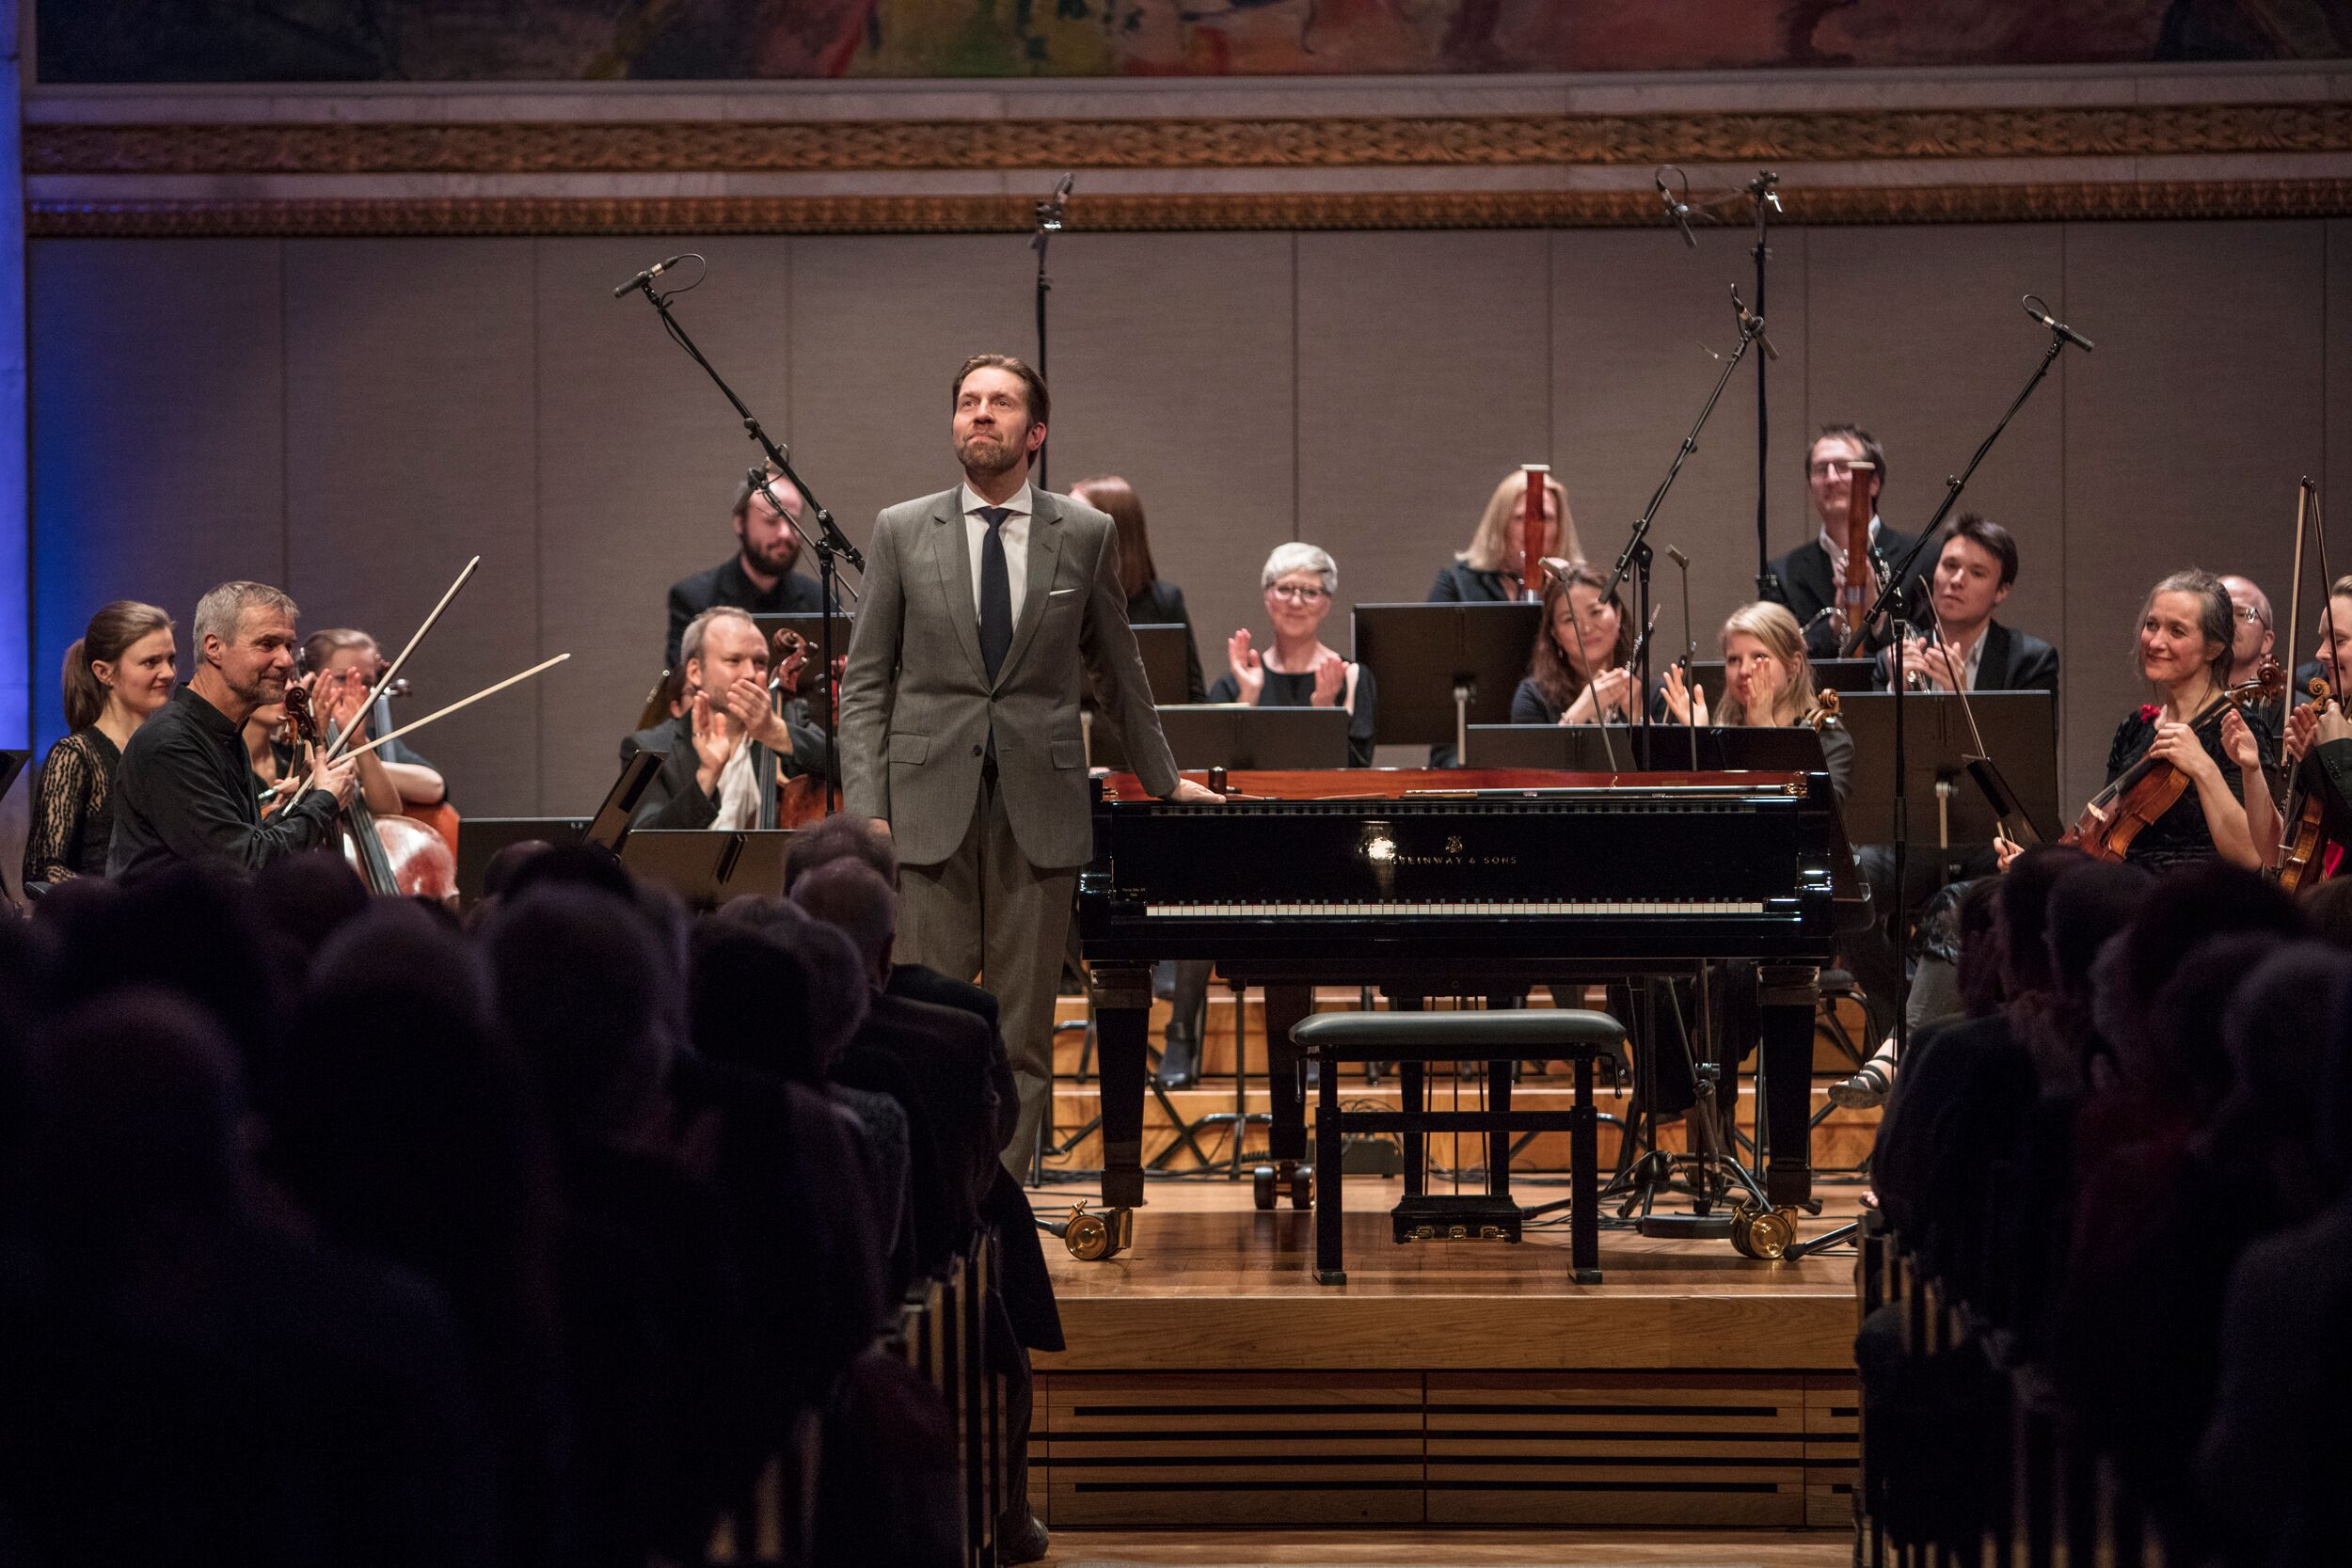 Leif Ove Andsnes in Oslo's University Aula